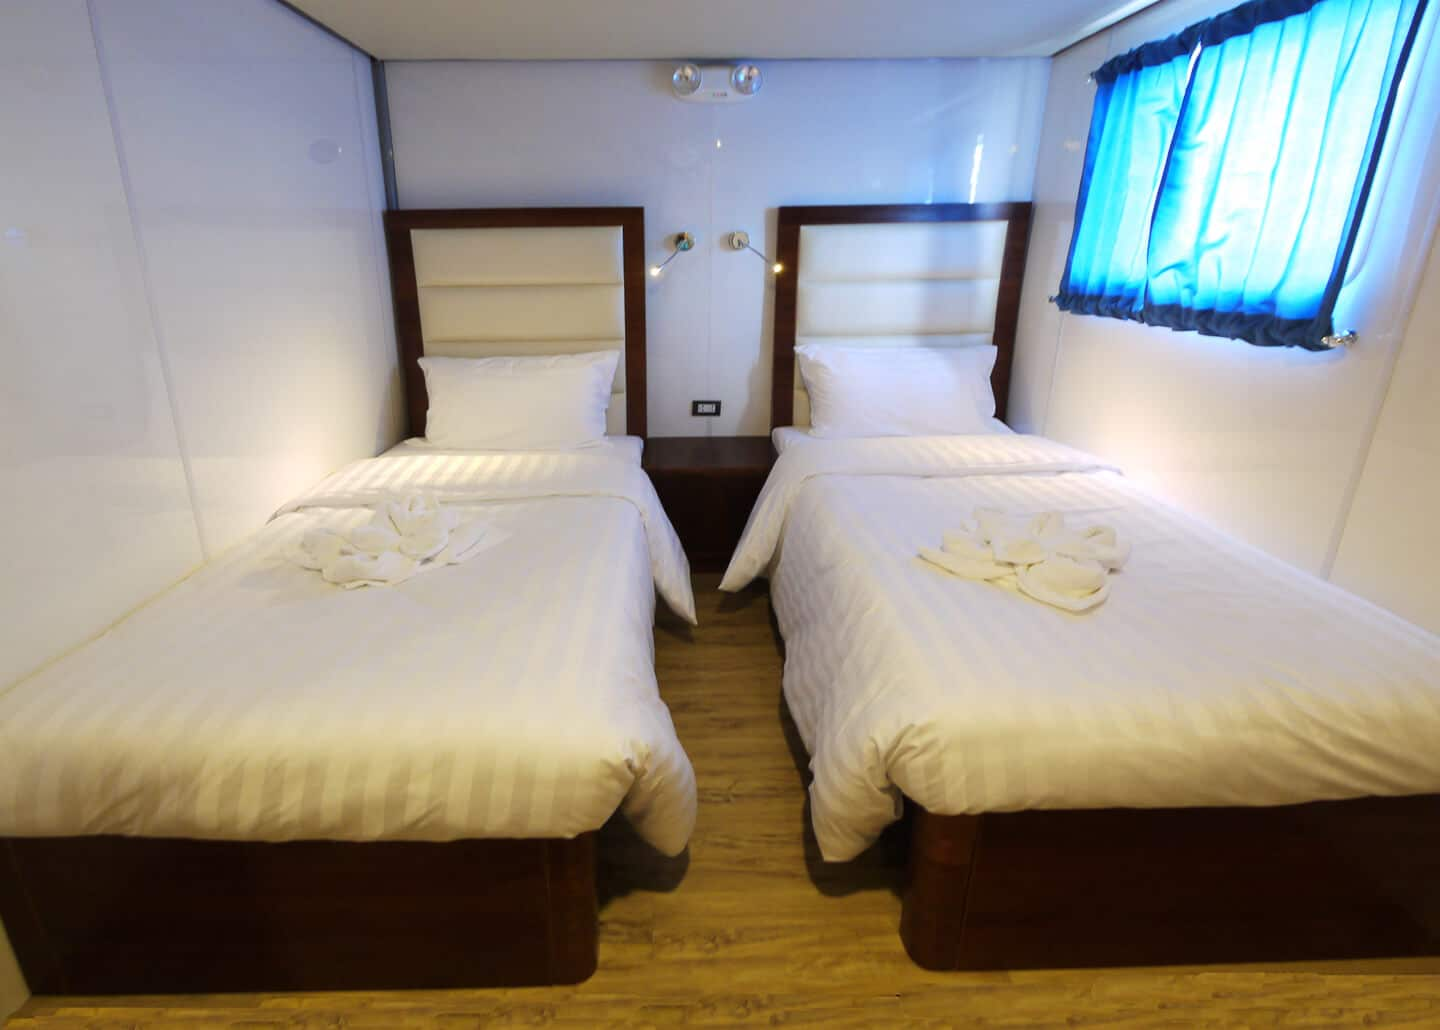 Upper Deck Cabin - Twin Bed